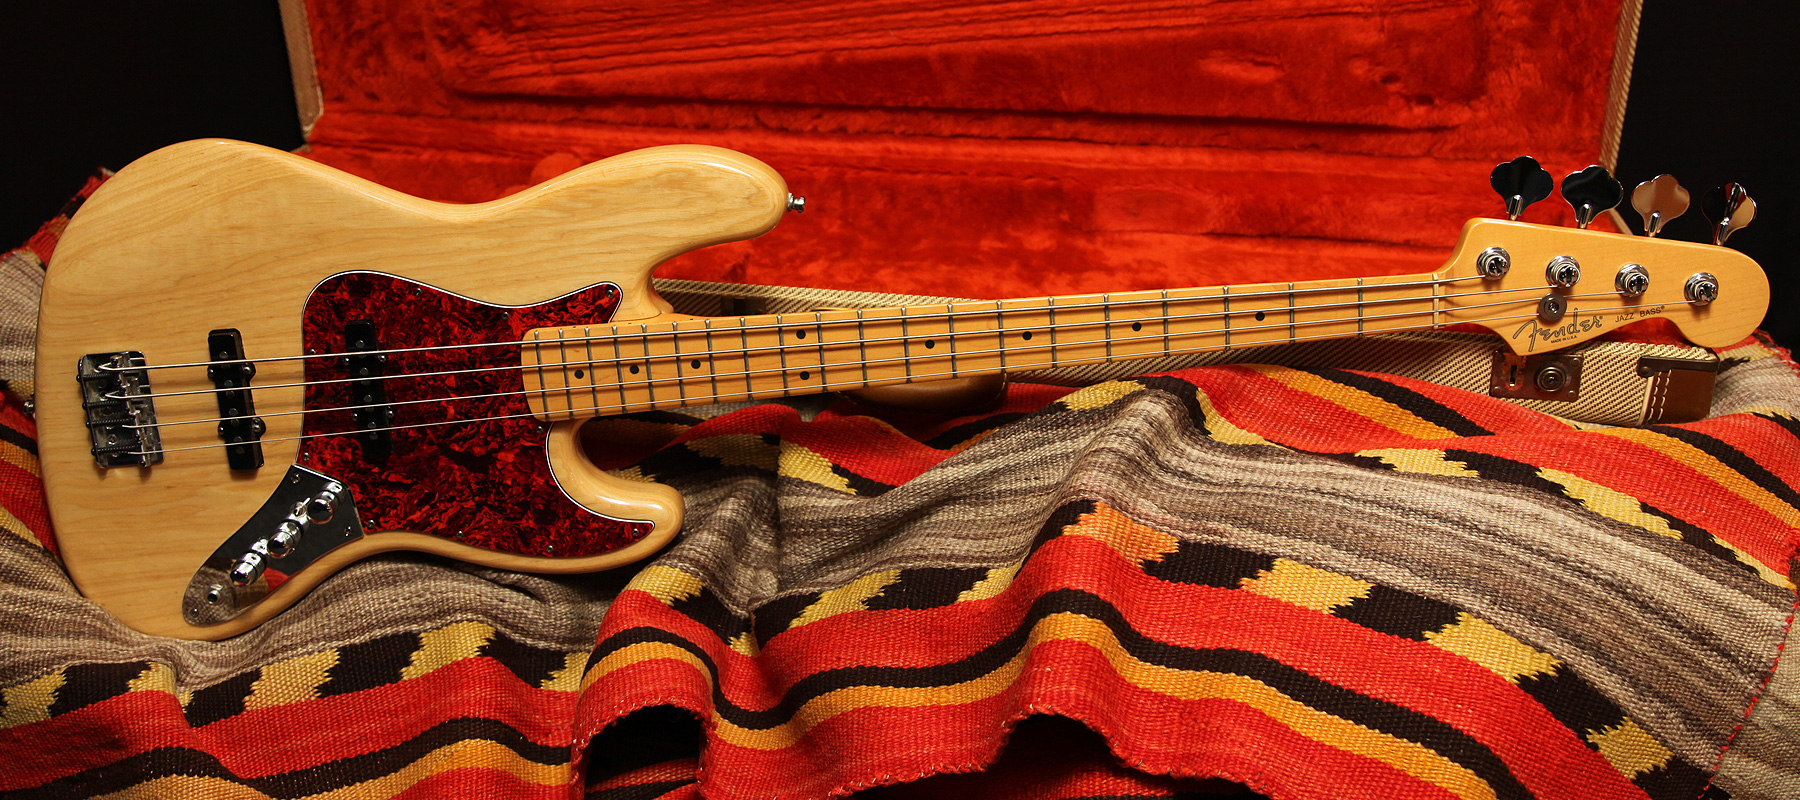 1999 Fender Jazz Bass Quot Natural Quot Rumble Seat Music